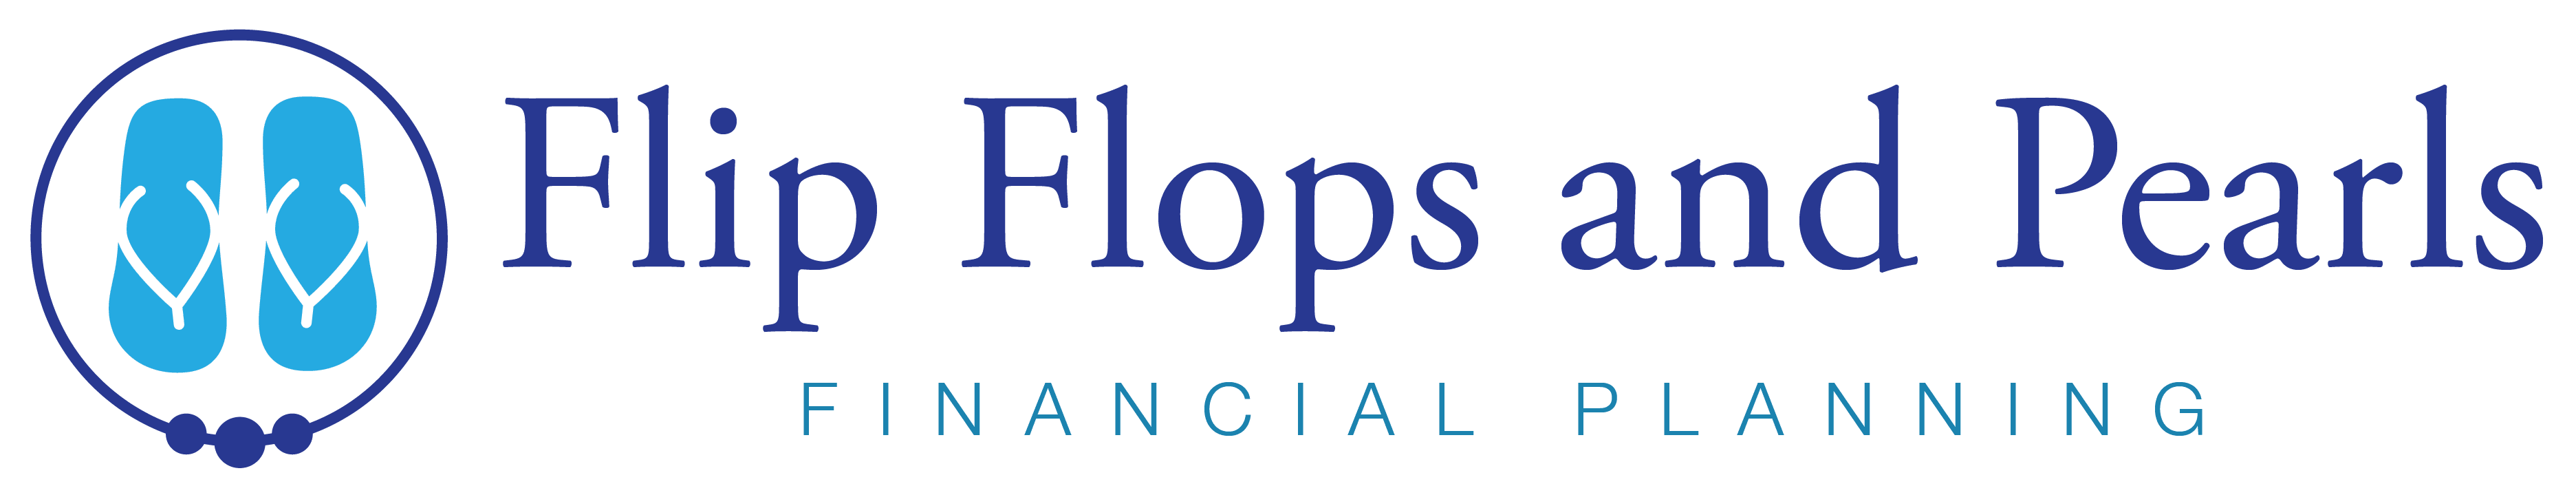 Flip Flops and Pearls Full horizontal logo